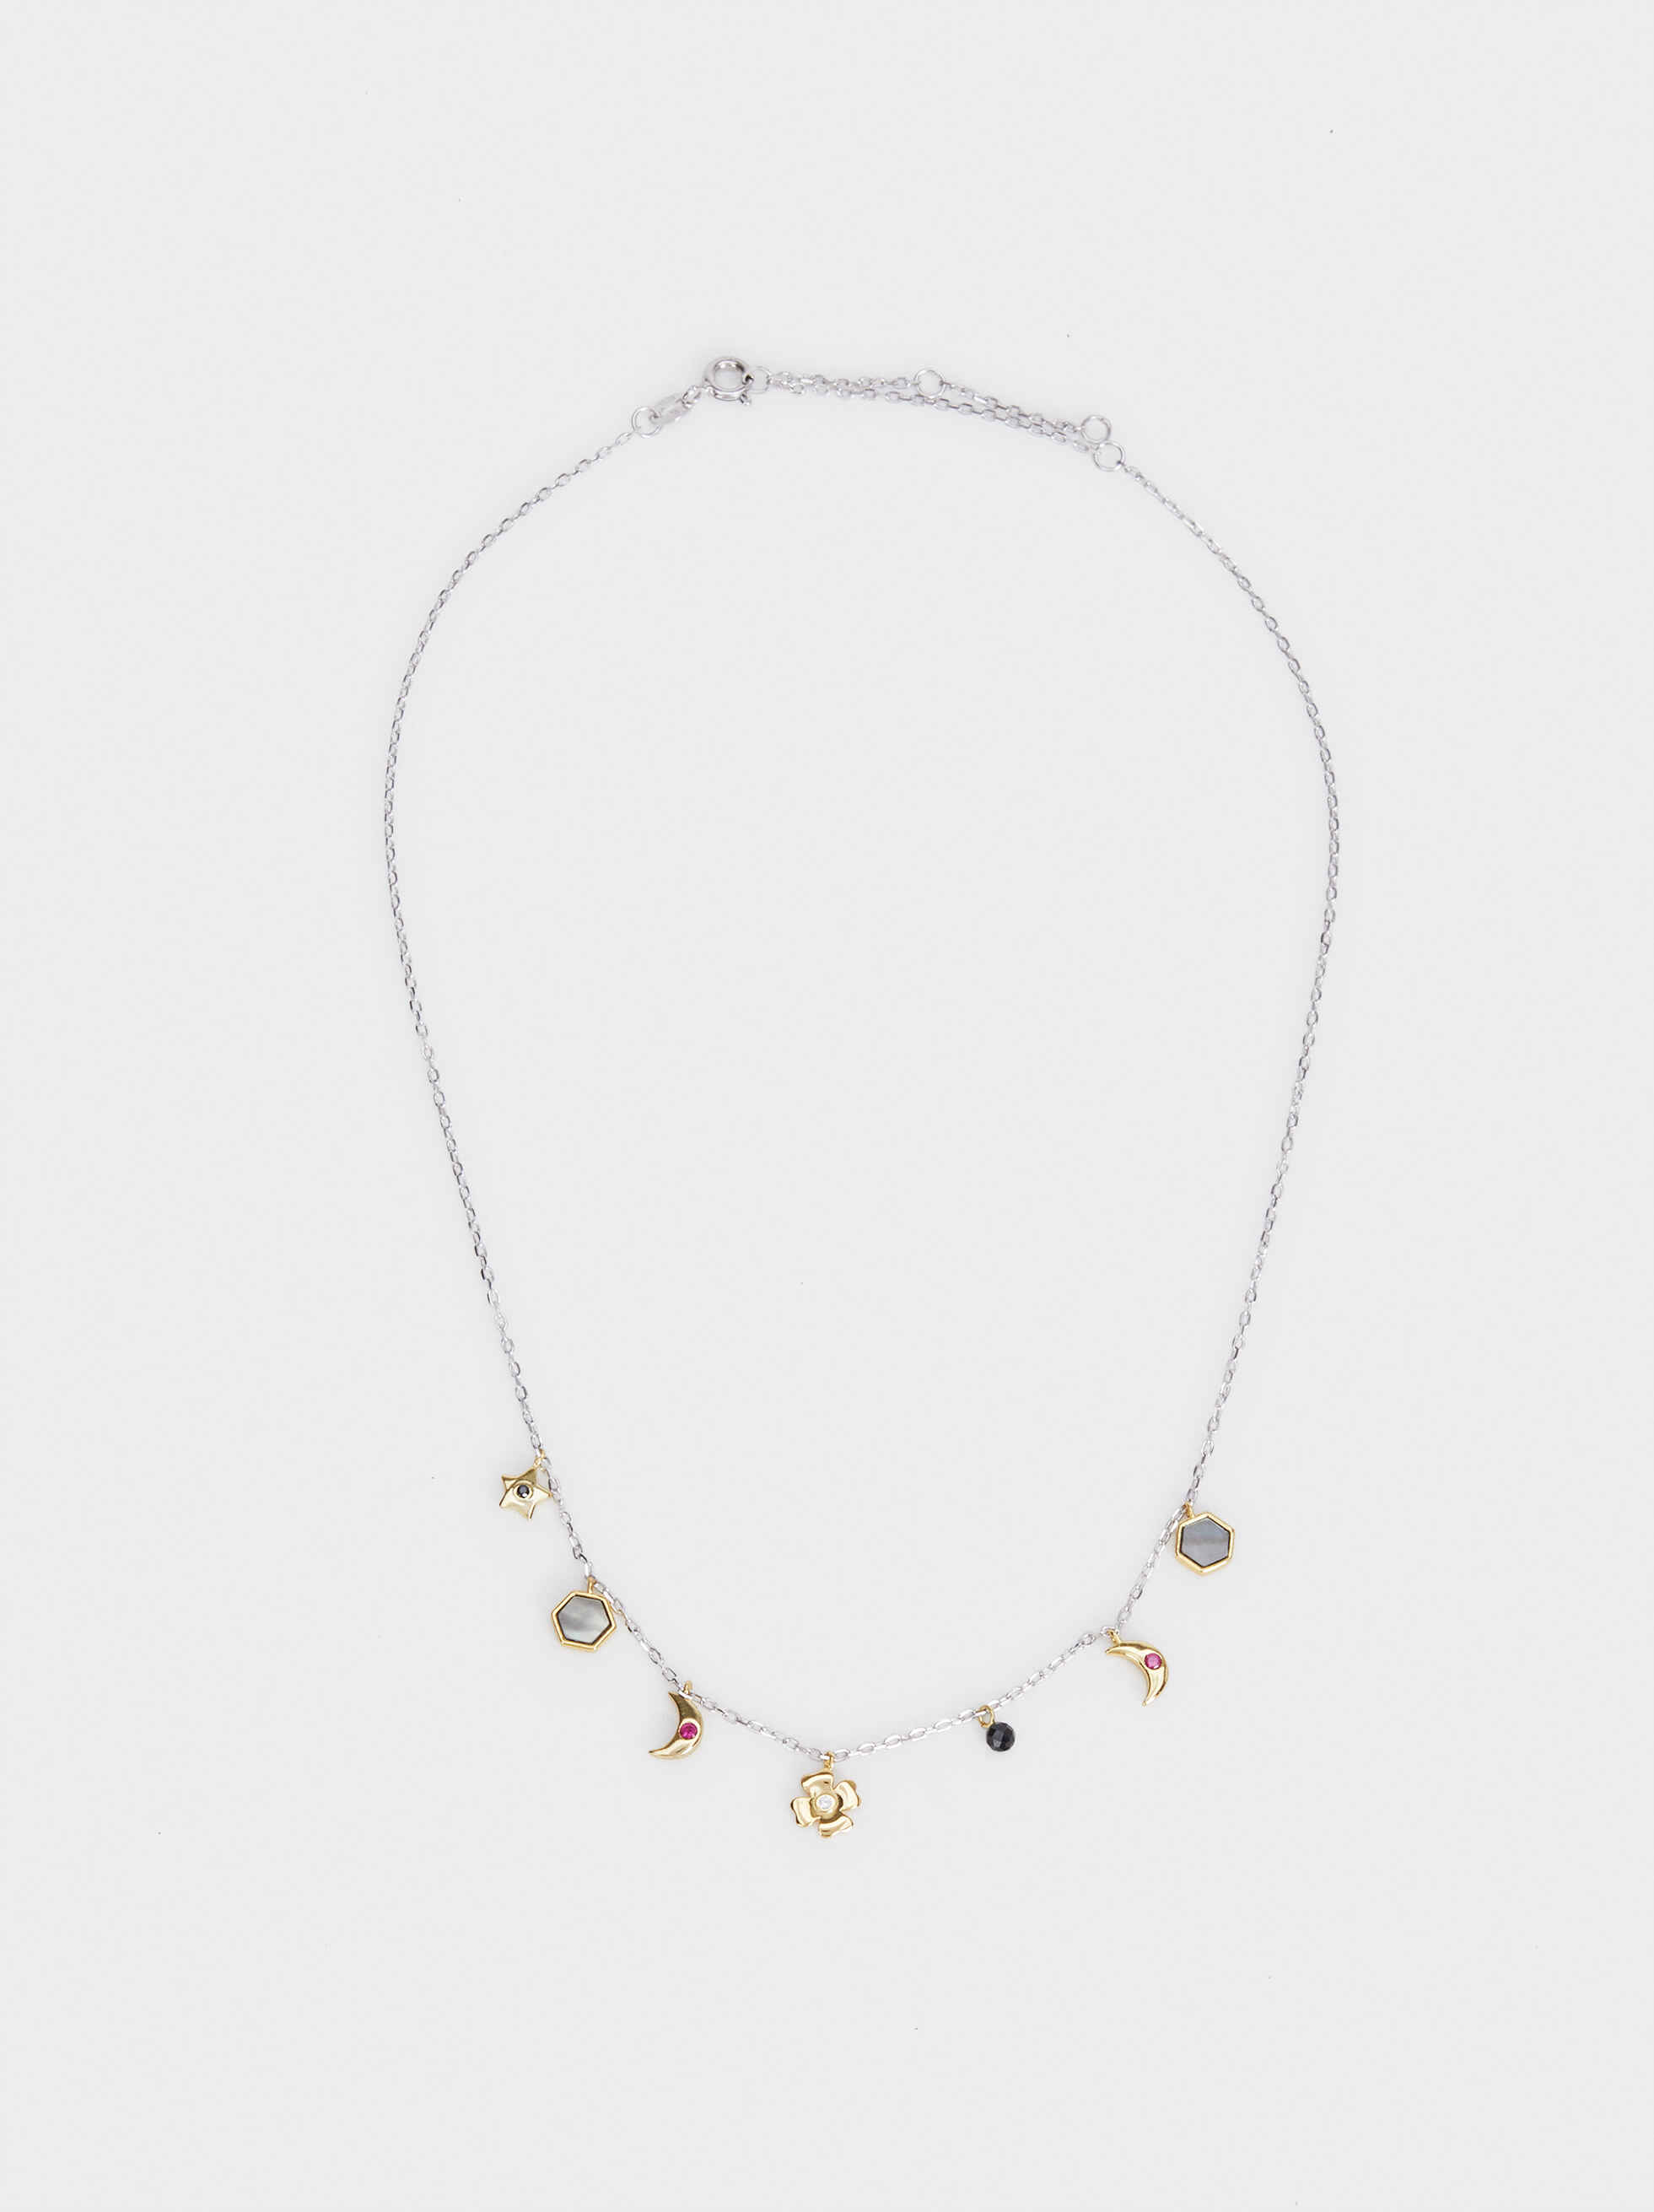 Short 925 Silver Necklace With Pendants, Multicolor, hi-res